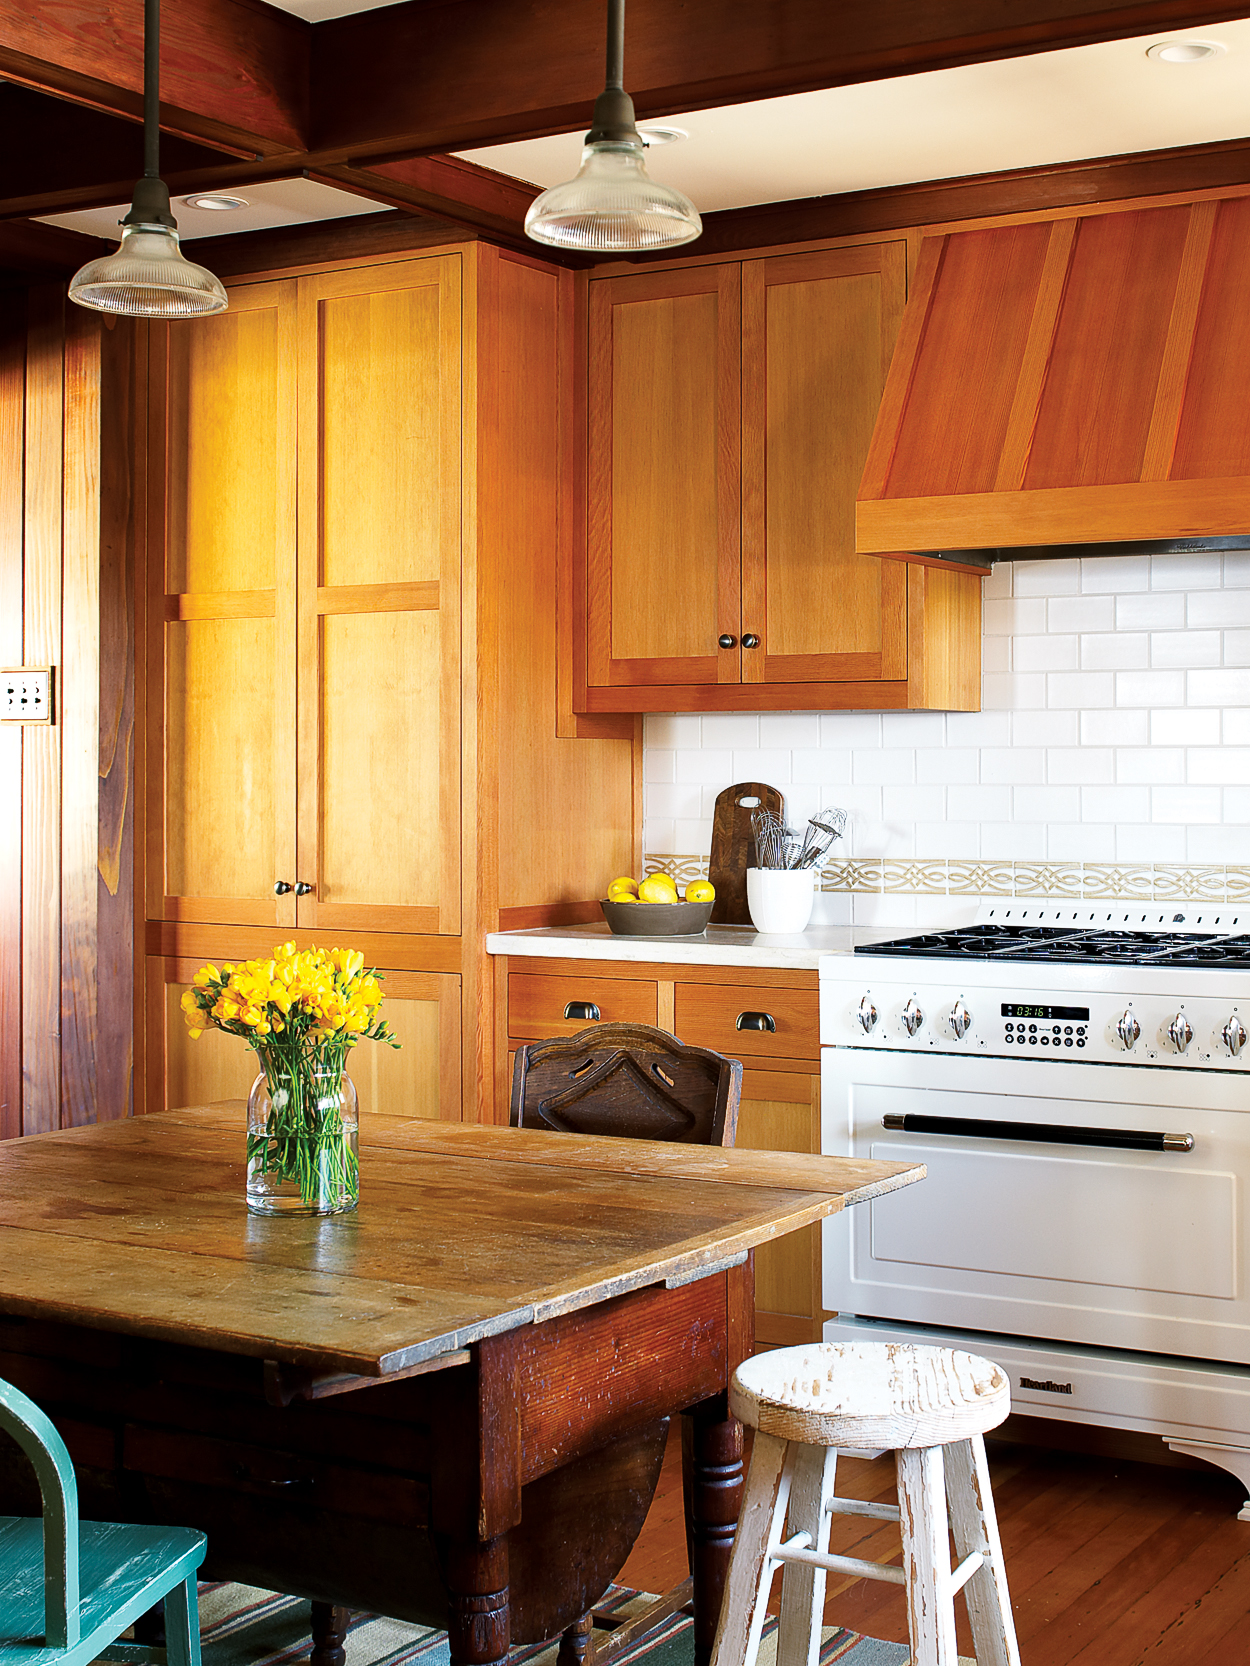 How to Repaint Kitchen Cabinets - Sunset Magazine